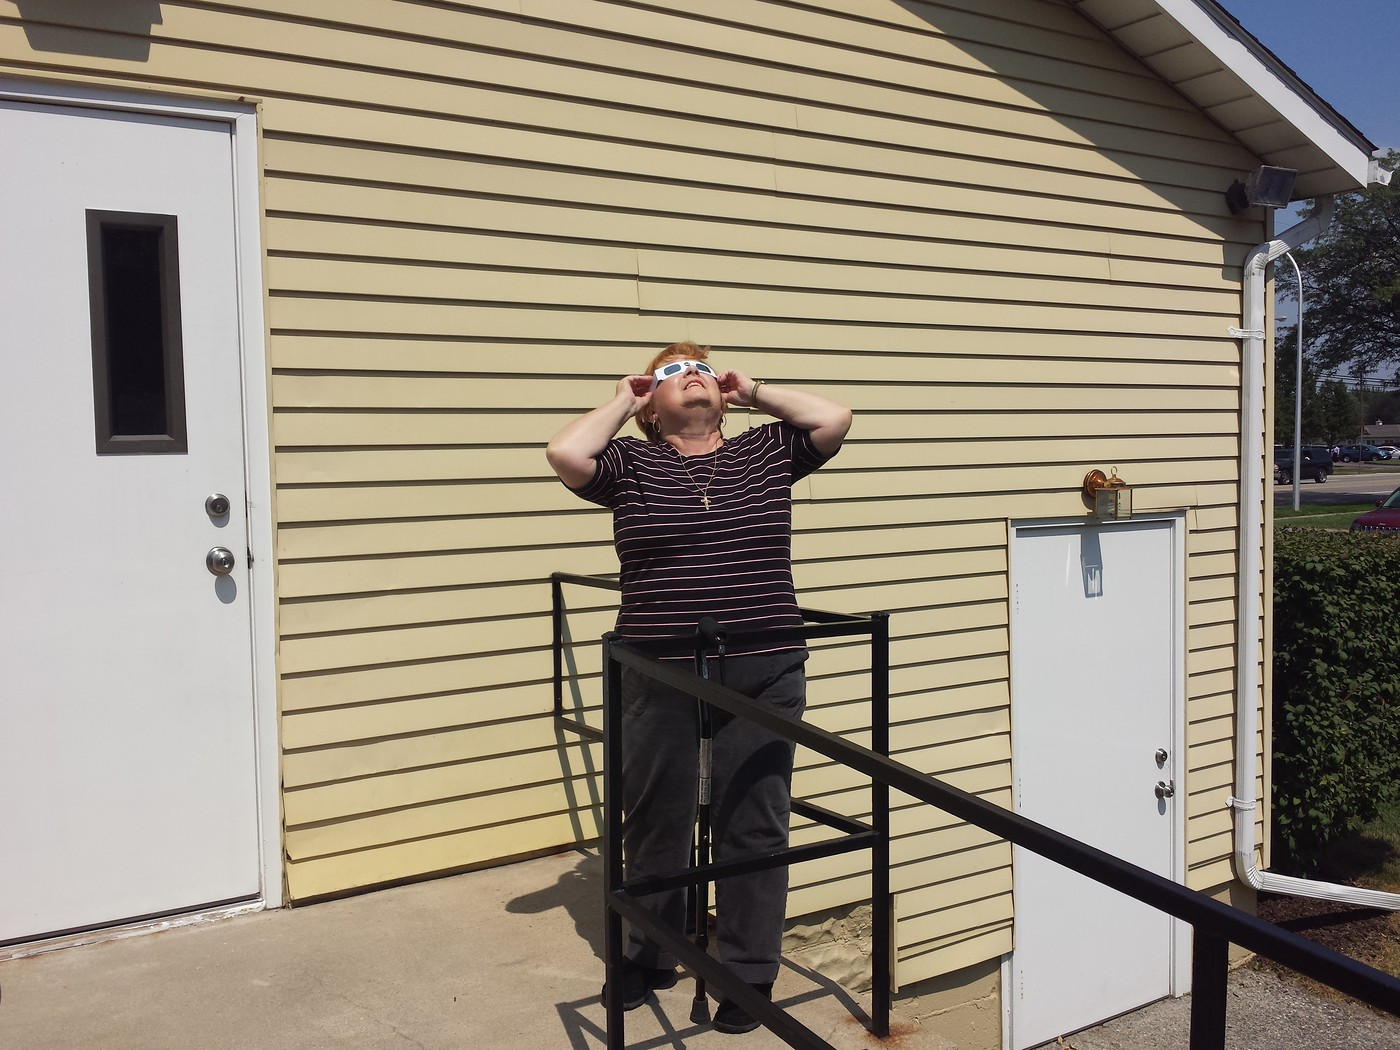 Linda looking at total solar eclipse